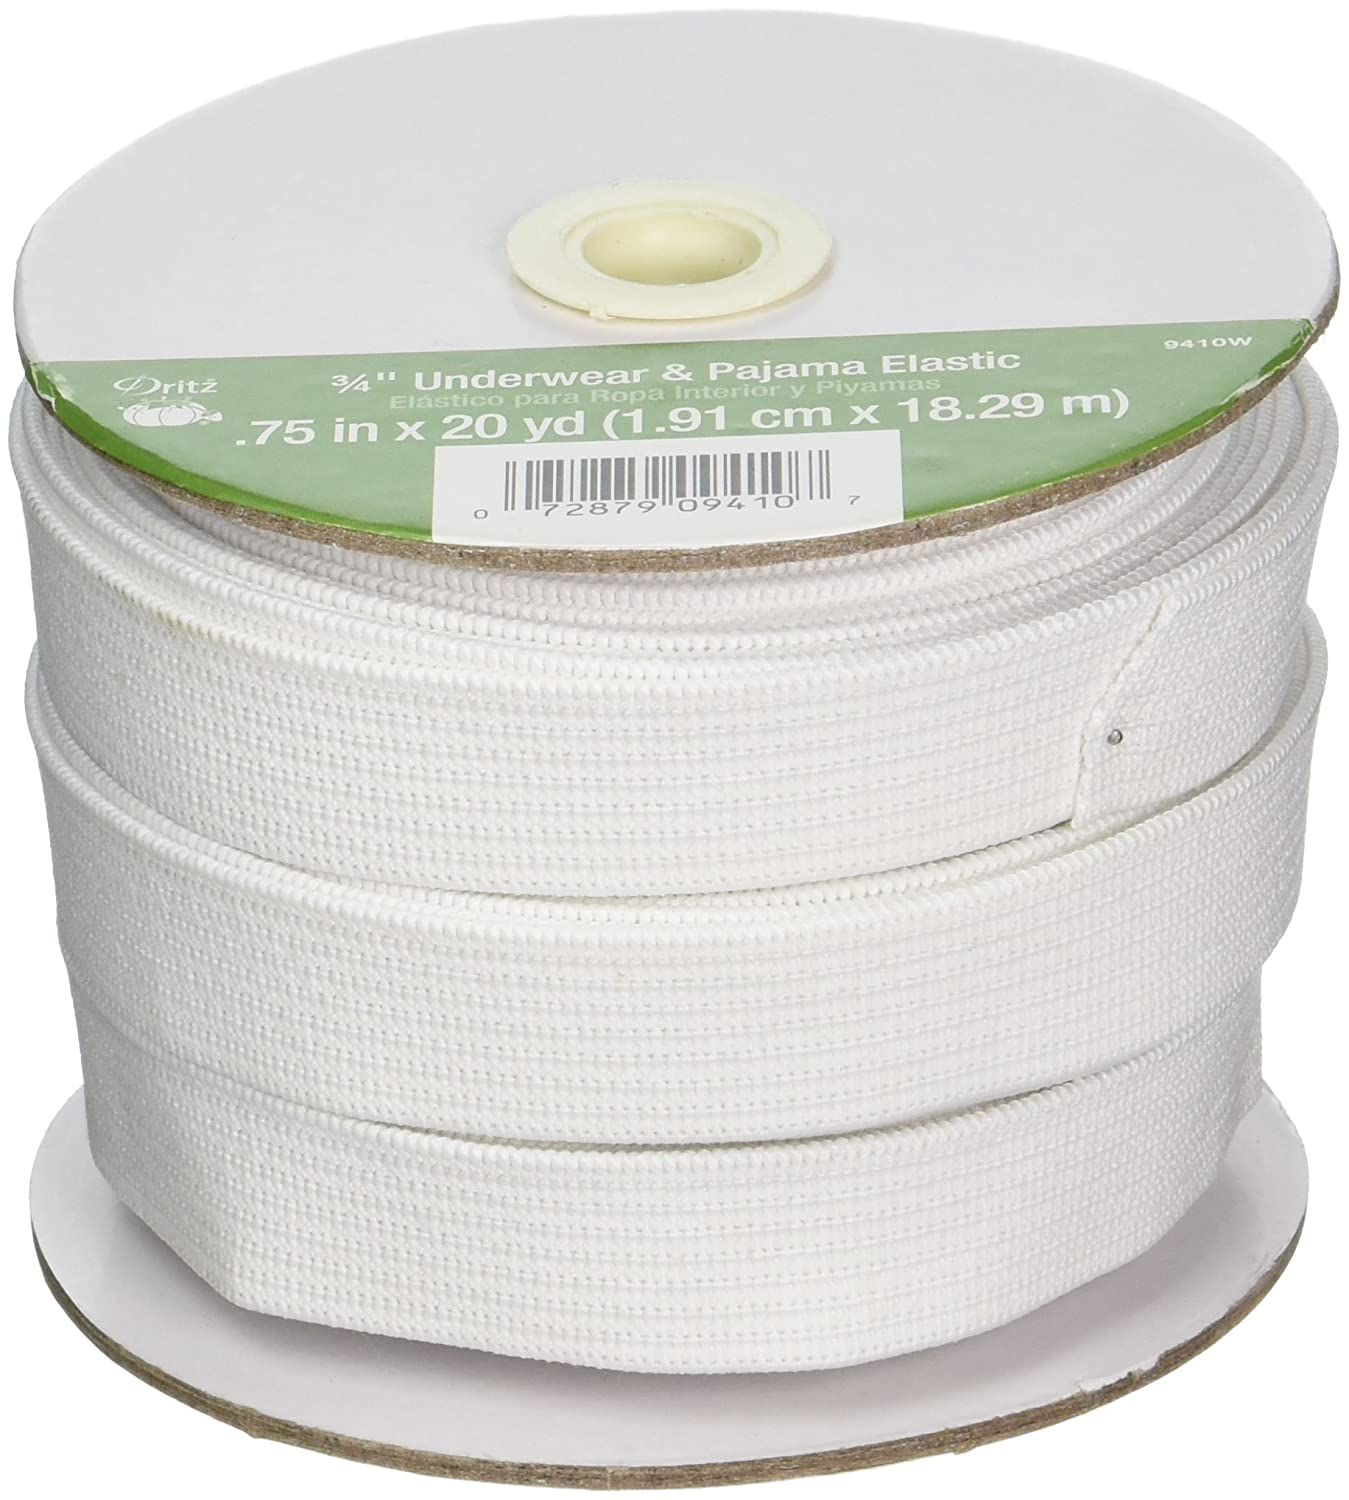 Amazon.com: Dritz 9410W Underwear & Pajama Woven Elastic, White, 3/4-Inch by 20-Yard: Arts, Crafts & Sewing